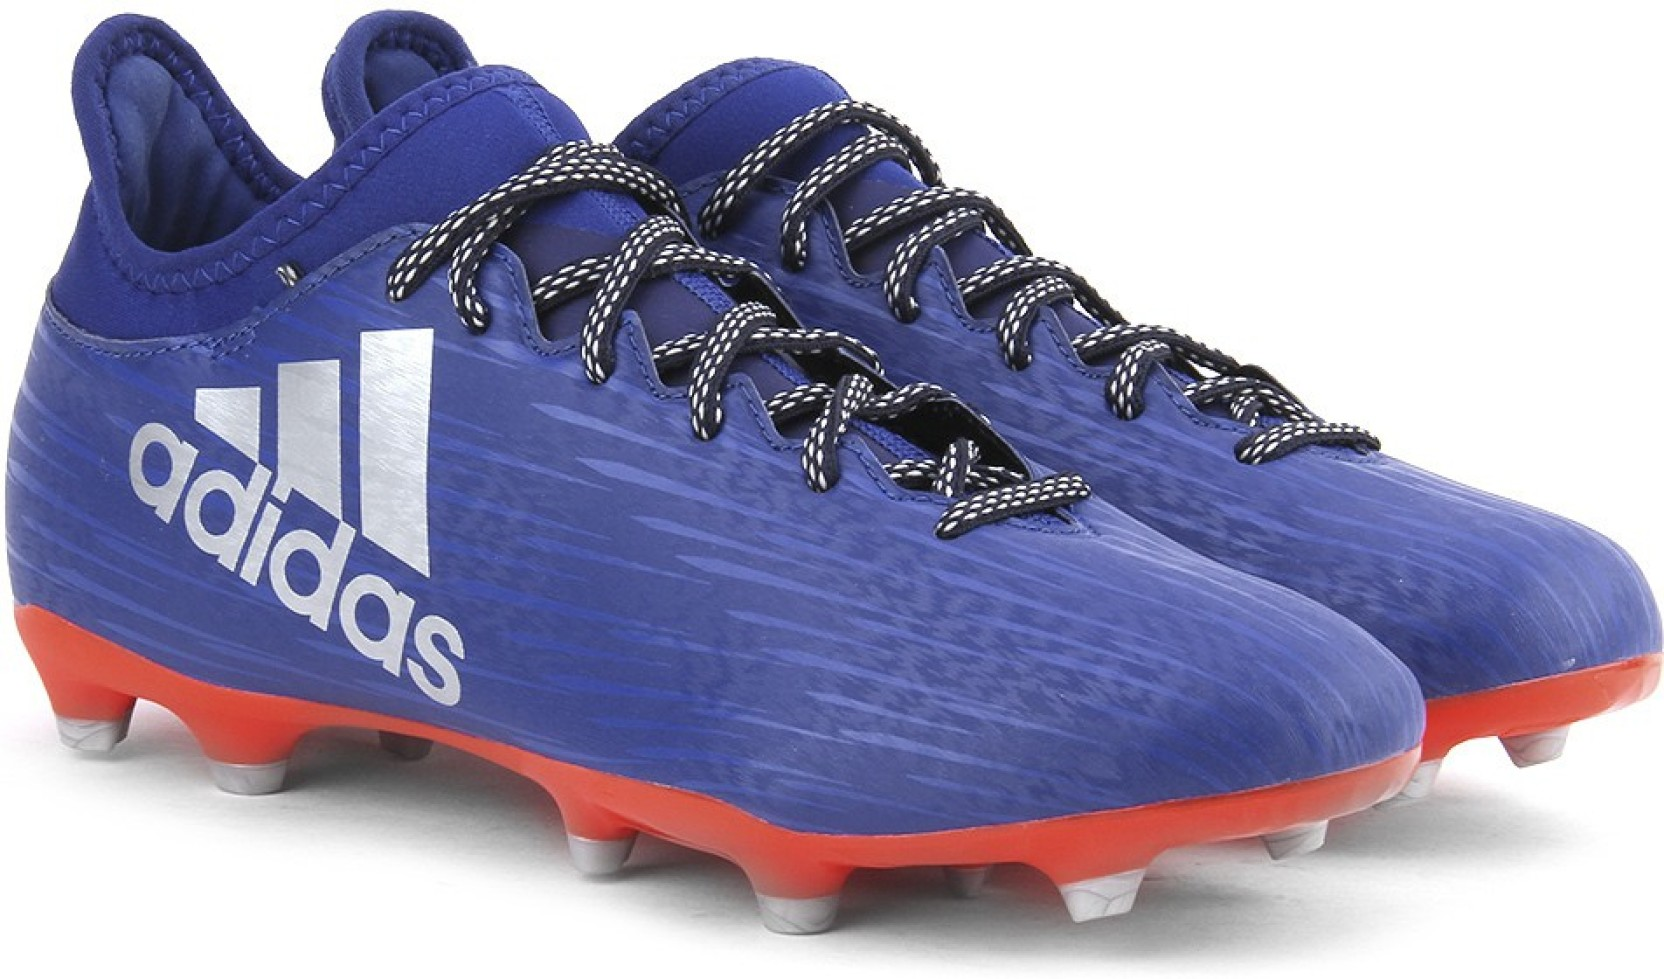 2bf9972c5ee9 ADIDAS X 16.3 FG Football Shoes For Men - Buy CROYAL SILVMT SOLRED ...